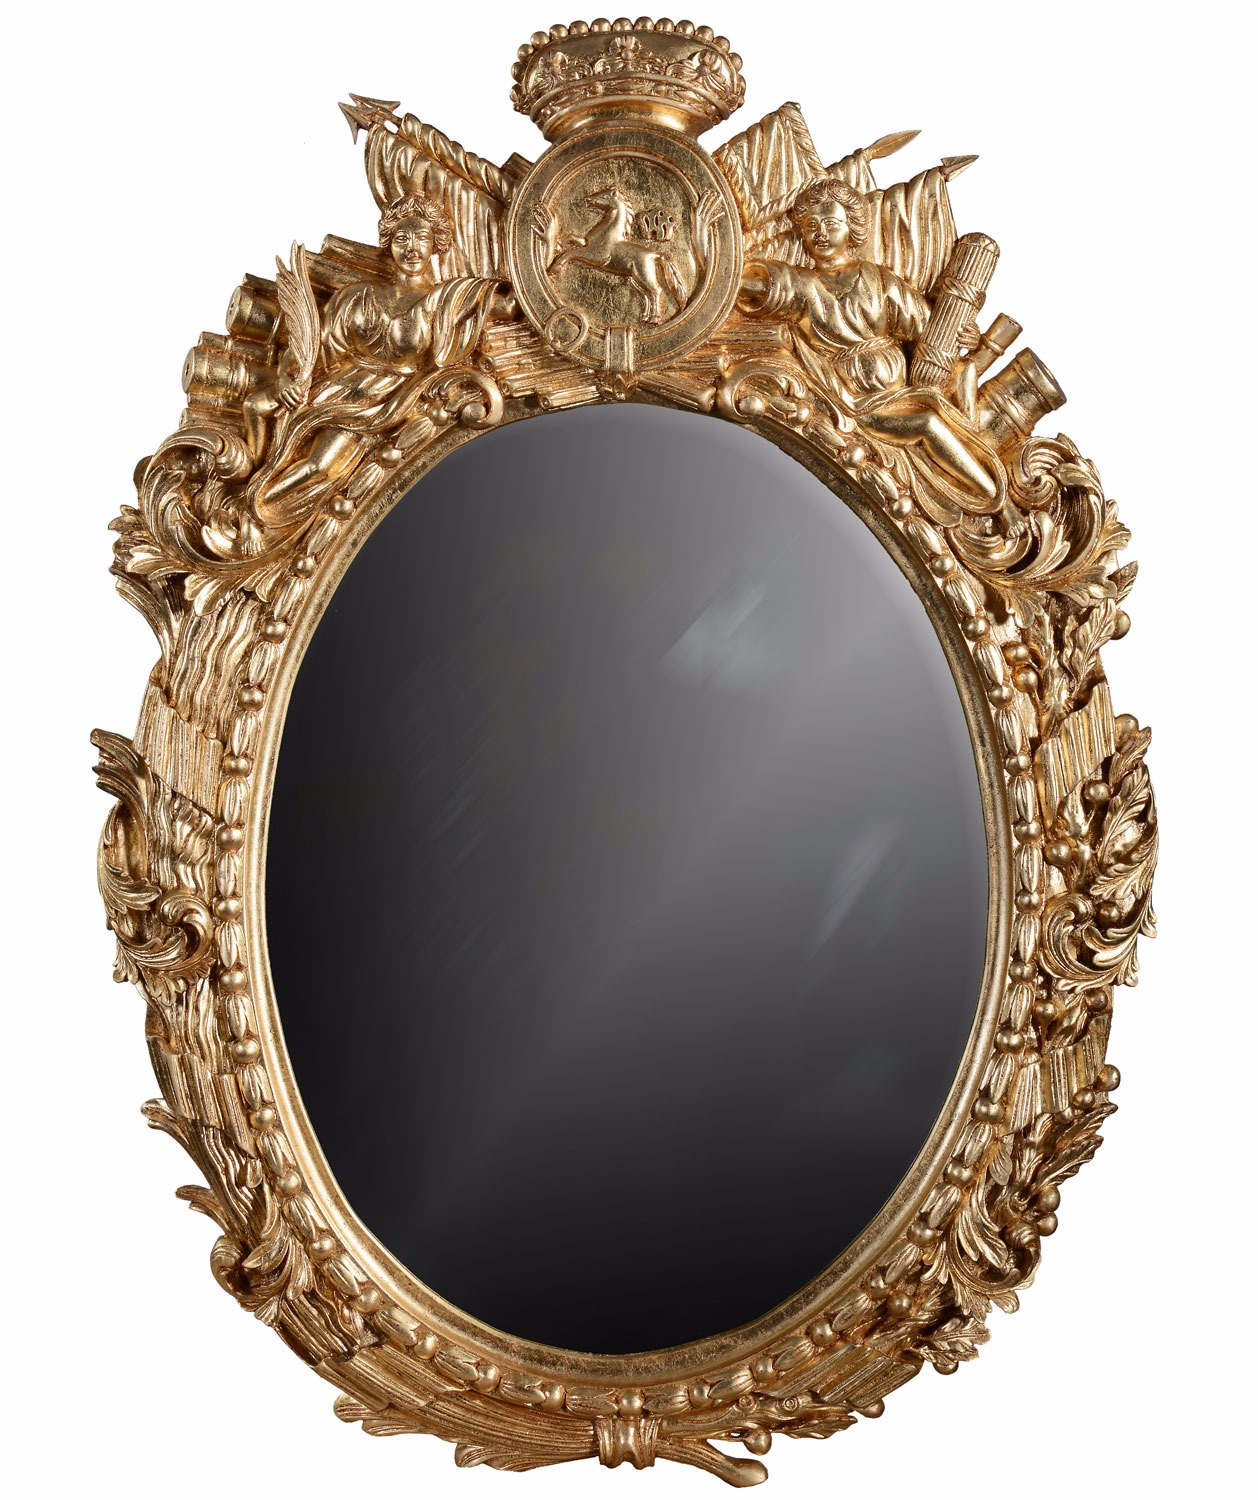 18th Century Military giltwood mirror